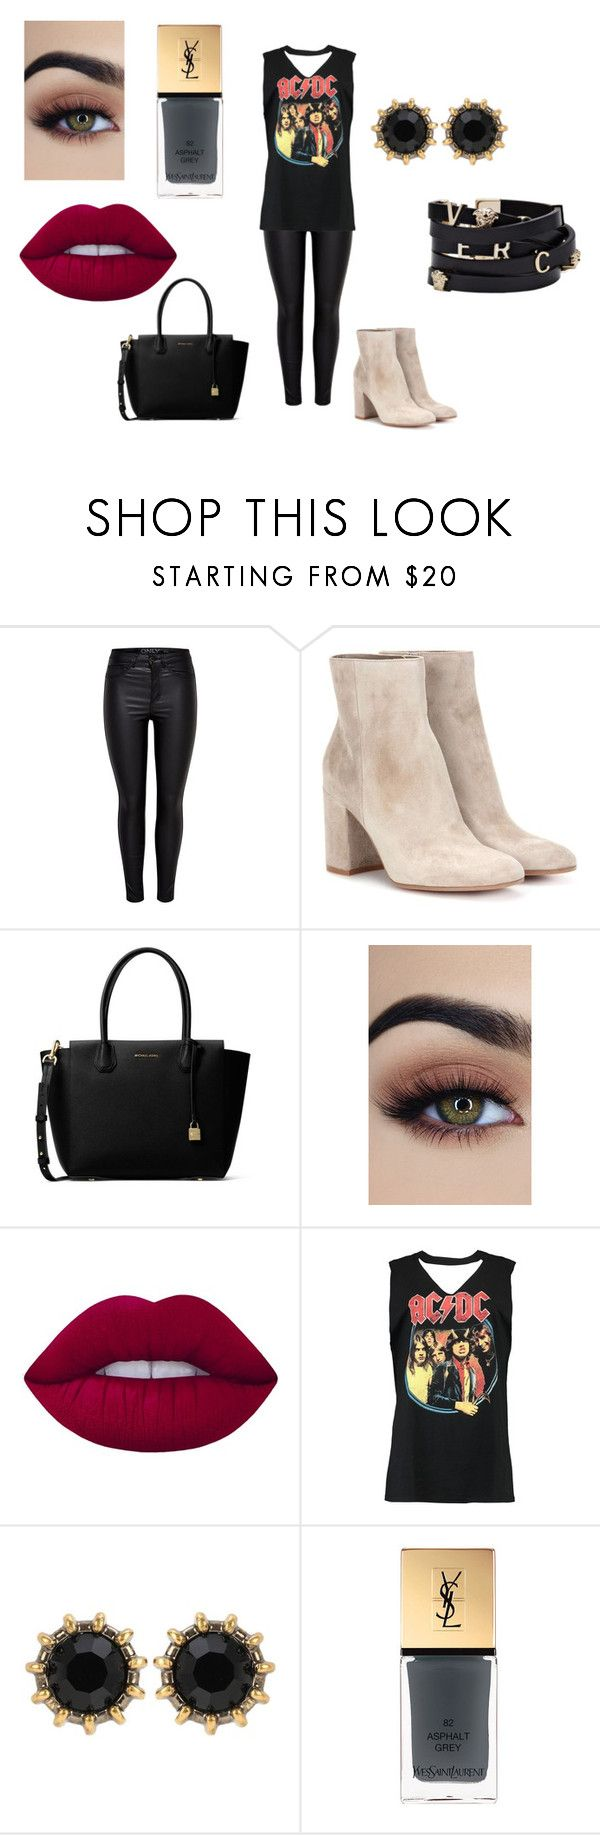 """""""...."""" by kkristinss on Polyvore featuring Gianvito Rossi, MICHAEL Michael Kors, Lime Crime, Boohoo, Versace, Gucci and Yves Saint Laurent"""